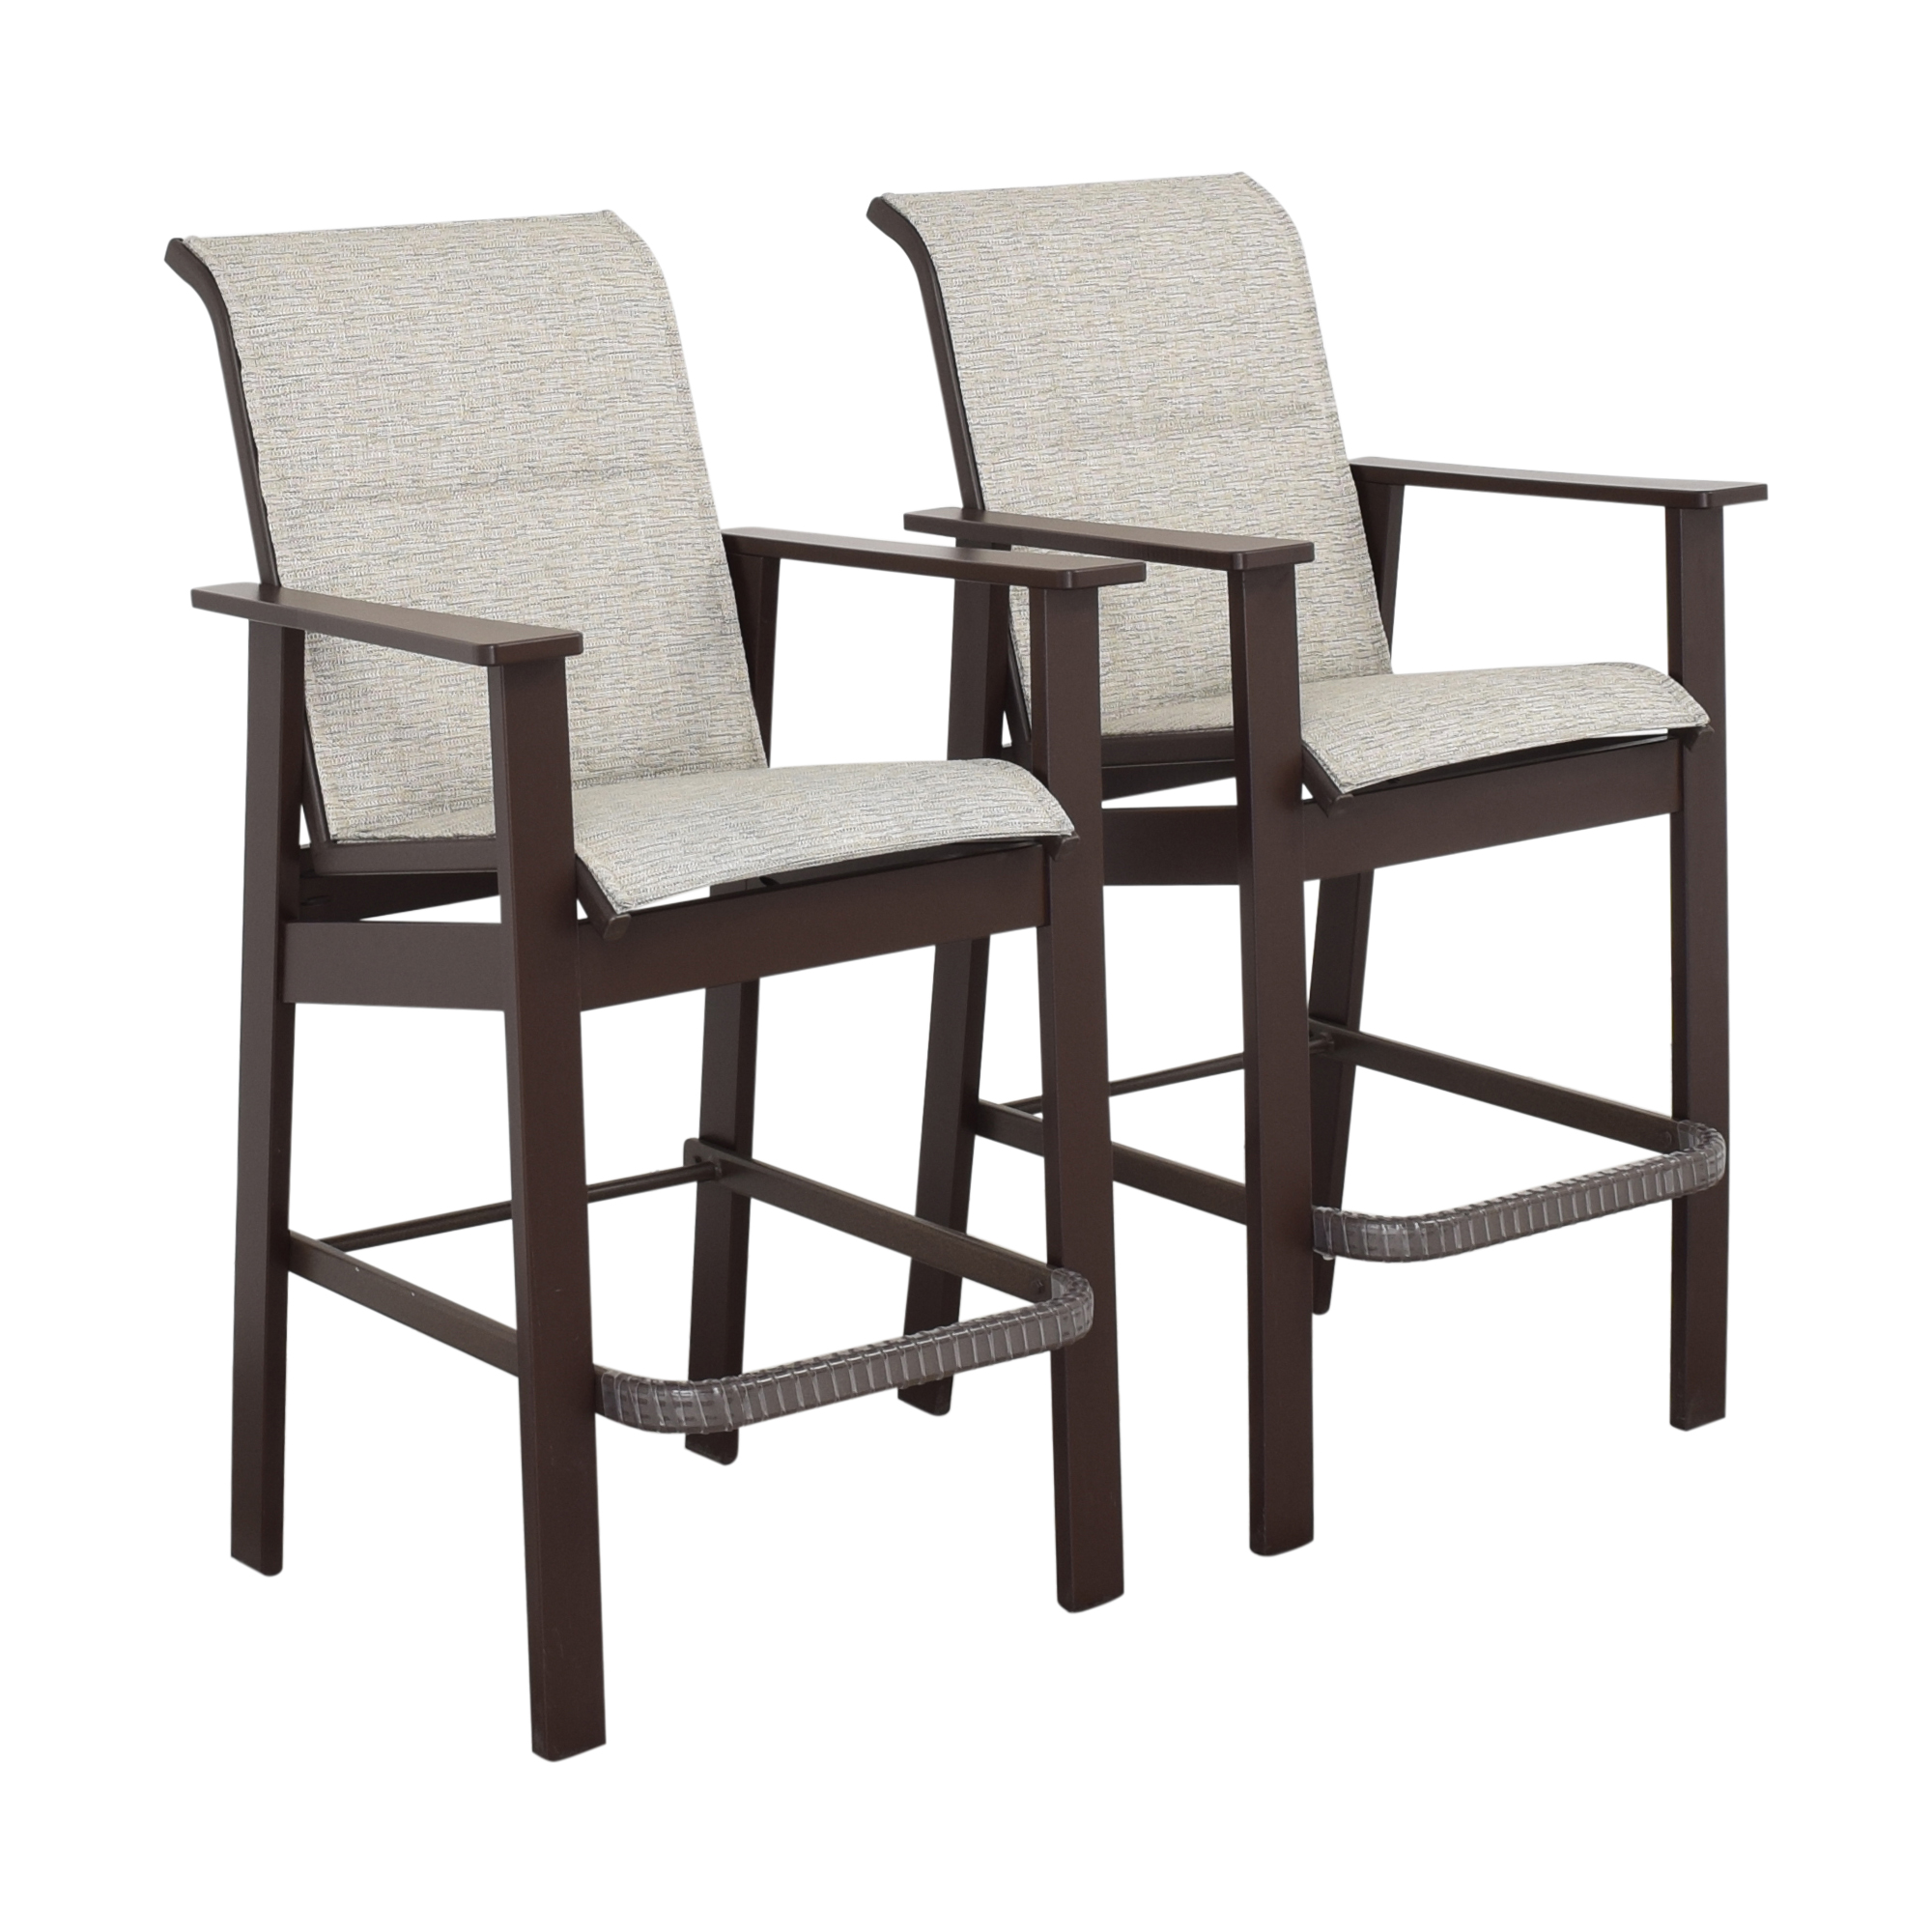 Windward Design Group Windward Design Group High Dining Chairs for sale